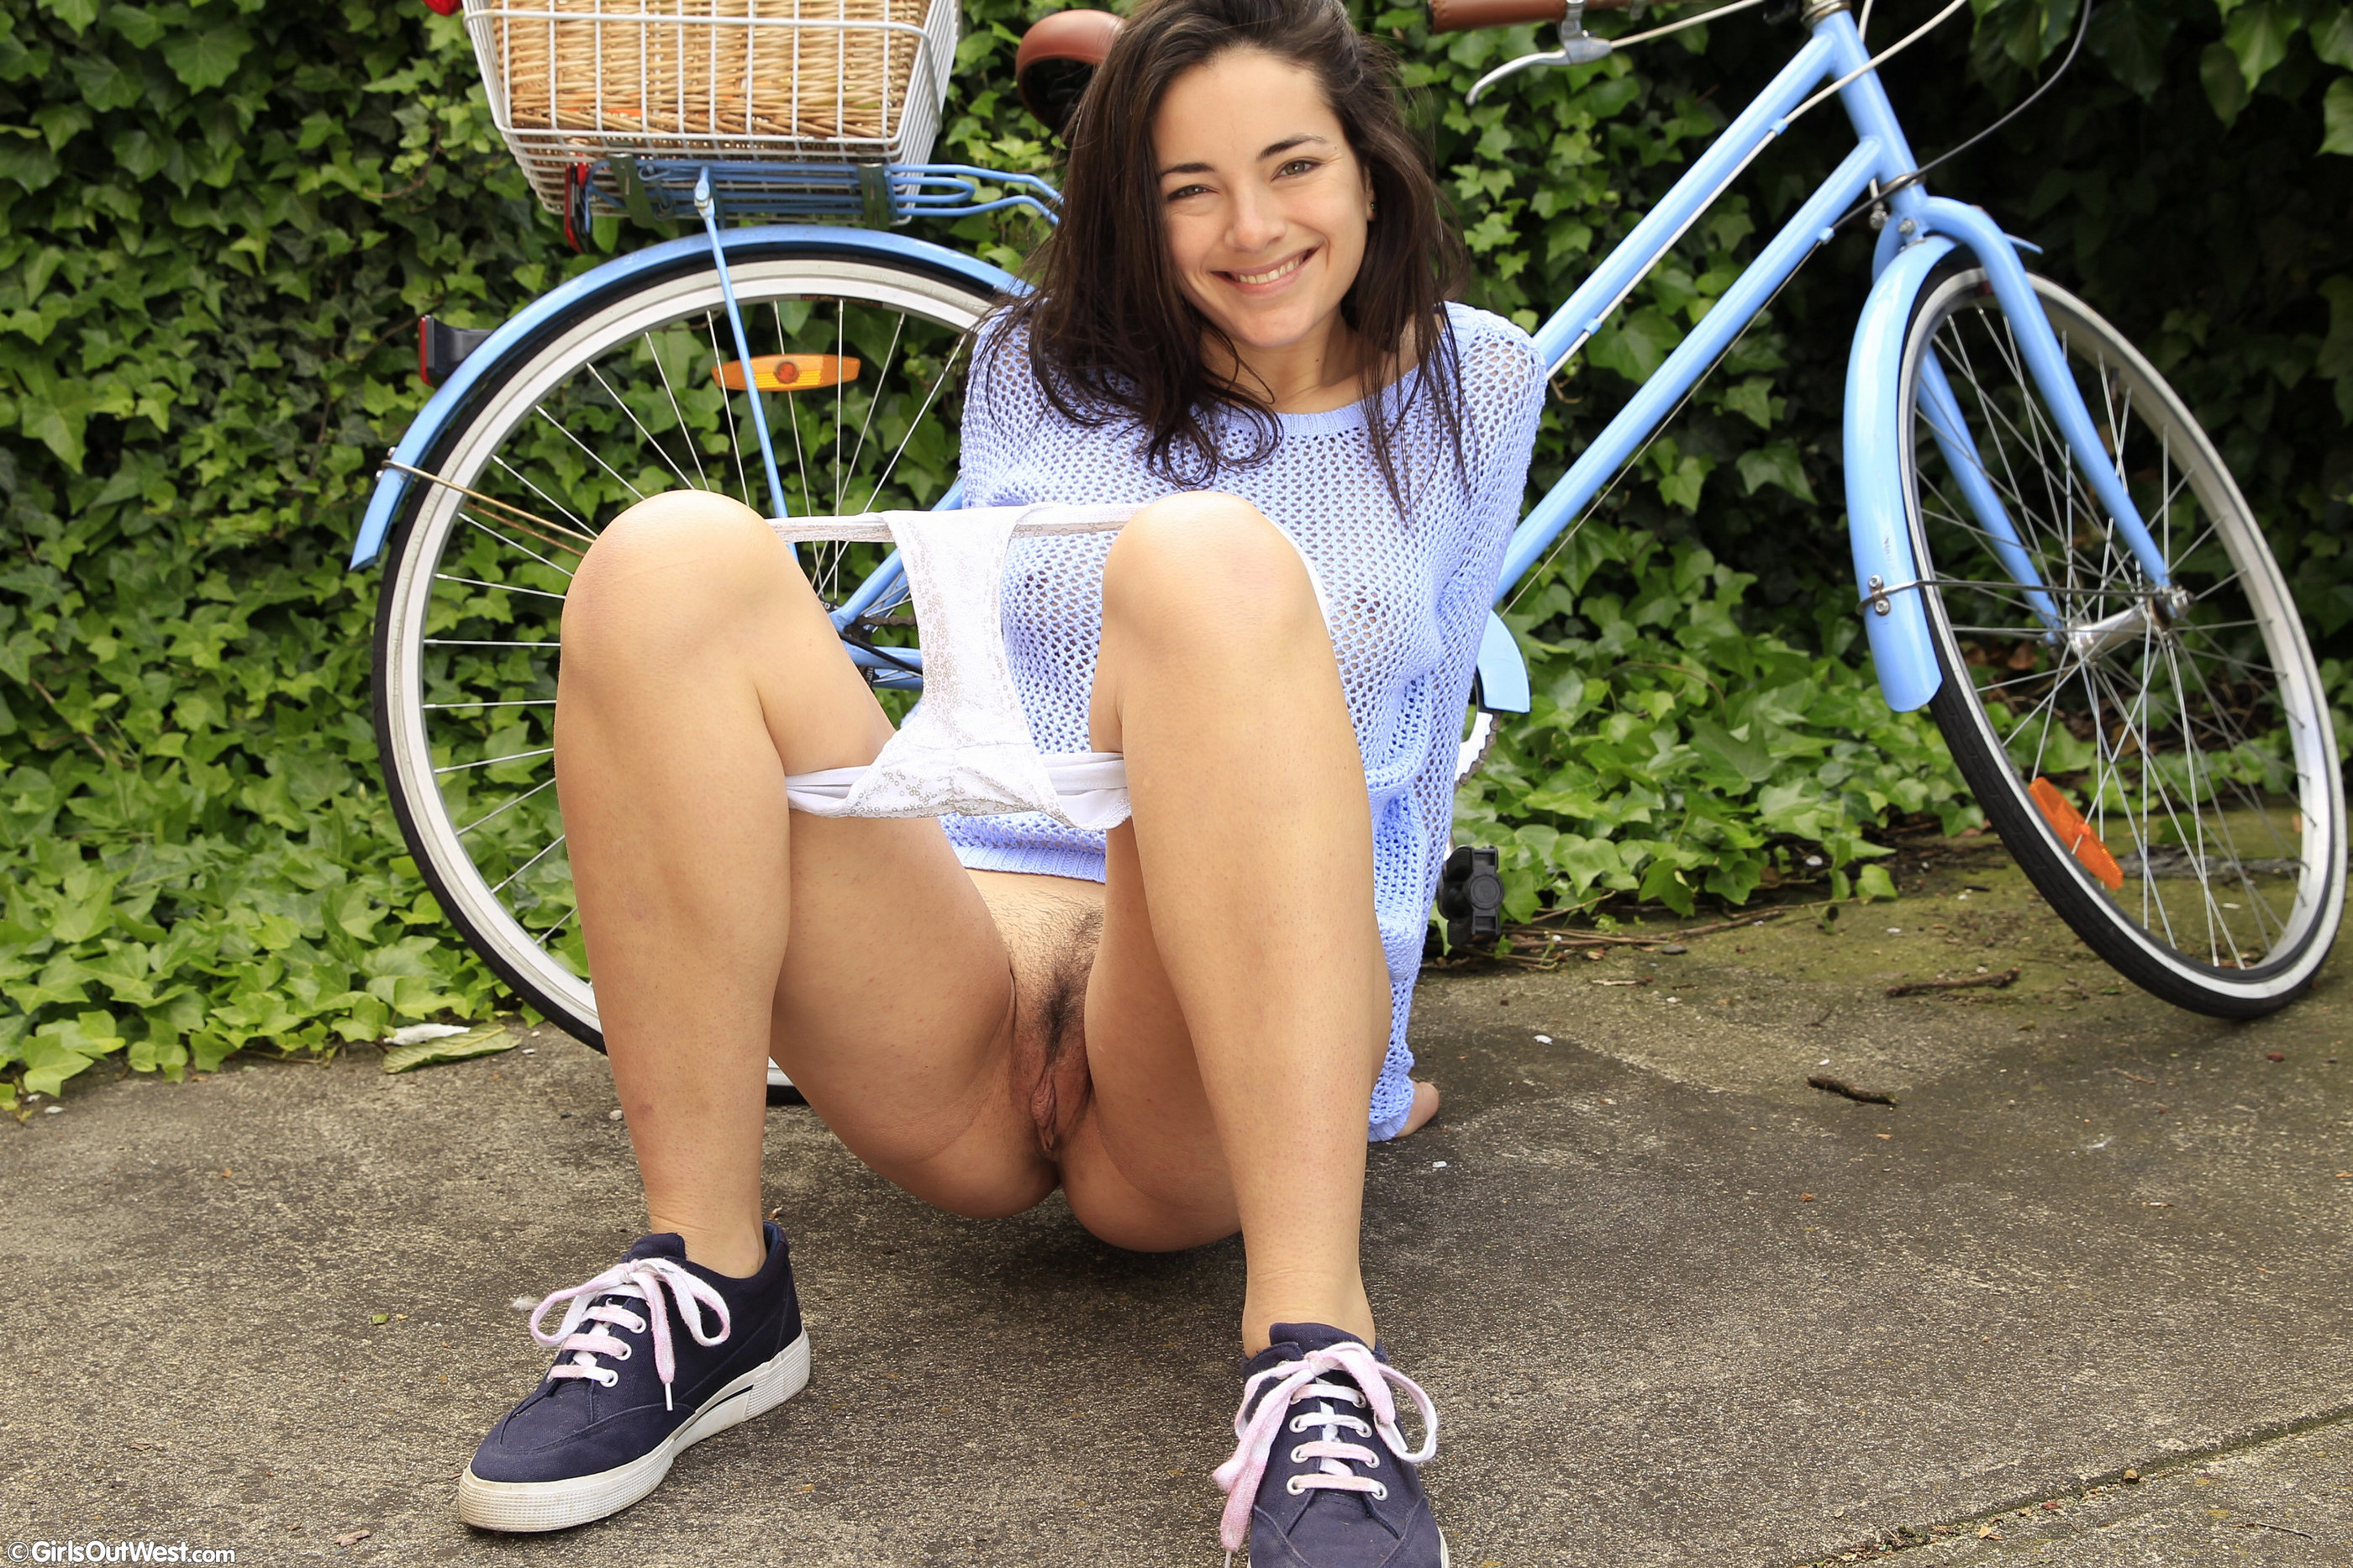 Hairy Amateur Cutie Loves Her Bike | Girls Out West Free Stuff